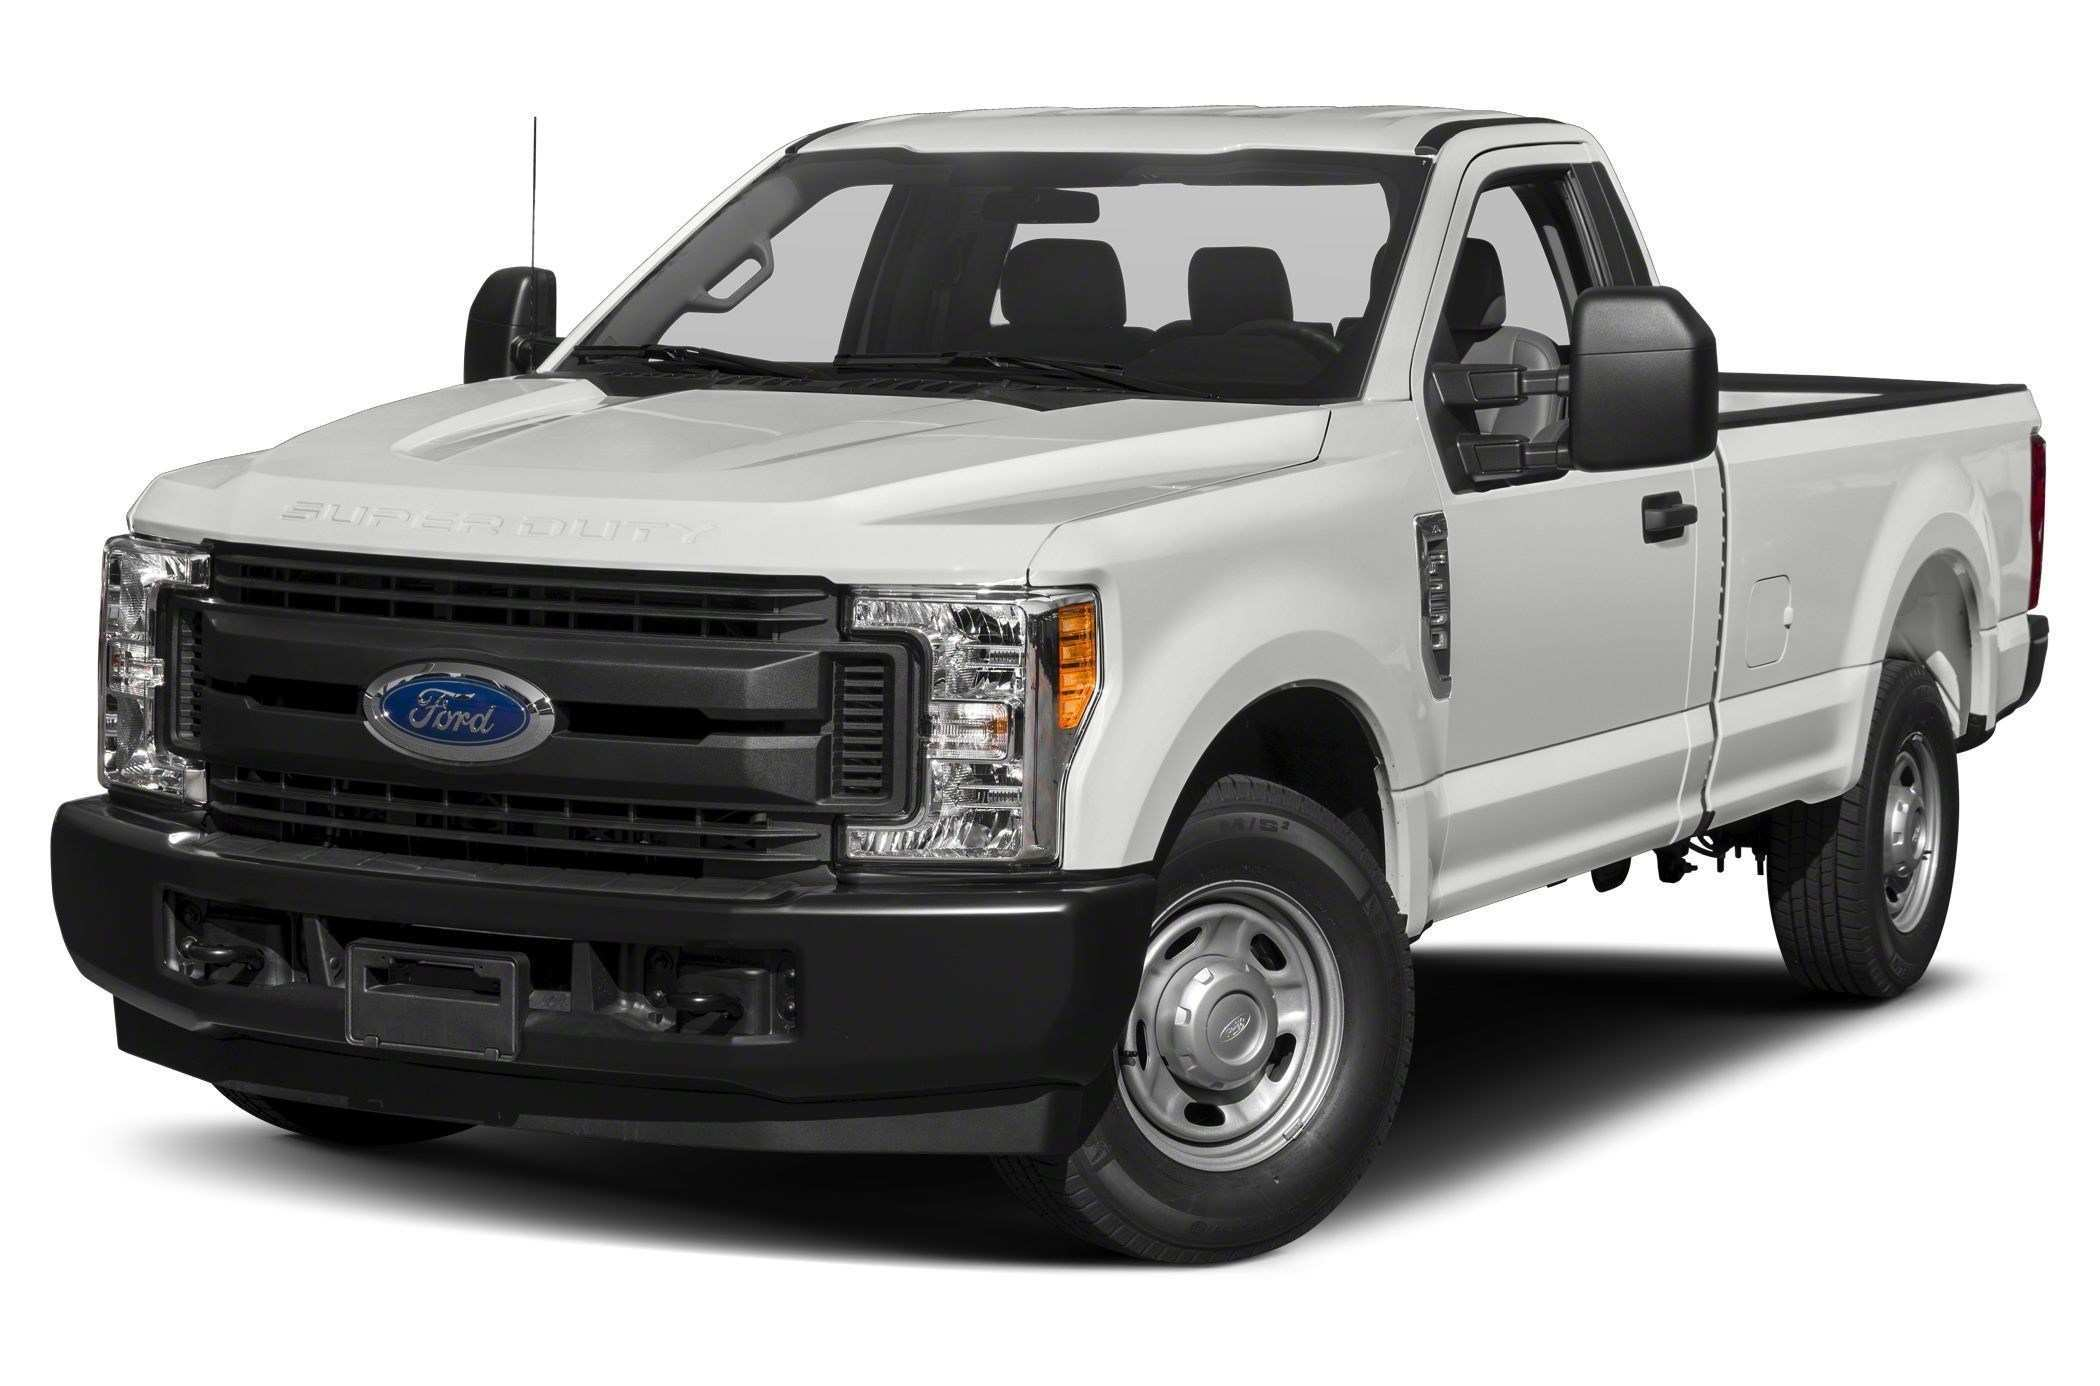 55 The 2019 Ford Super Duty Order Guide Spy Shoot History with 2019 Ford Super Duty Order Guide Spy Shoot